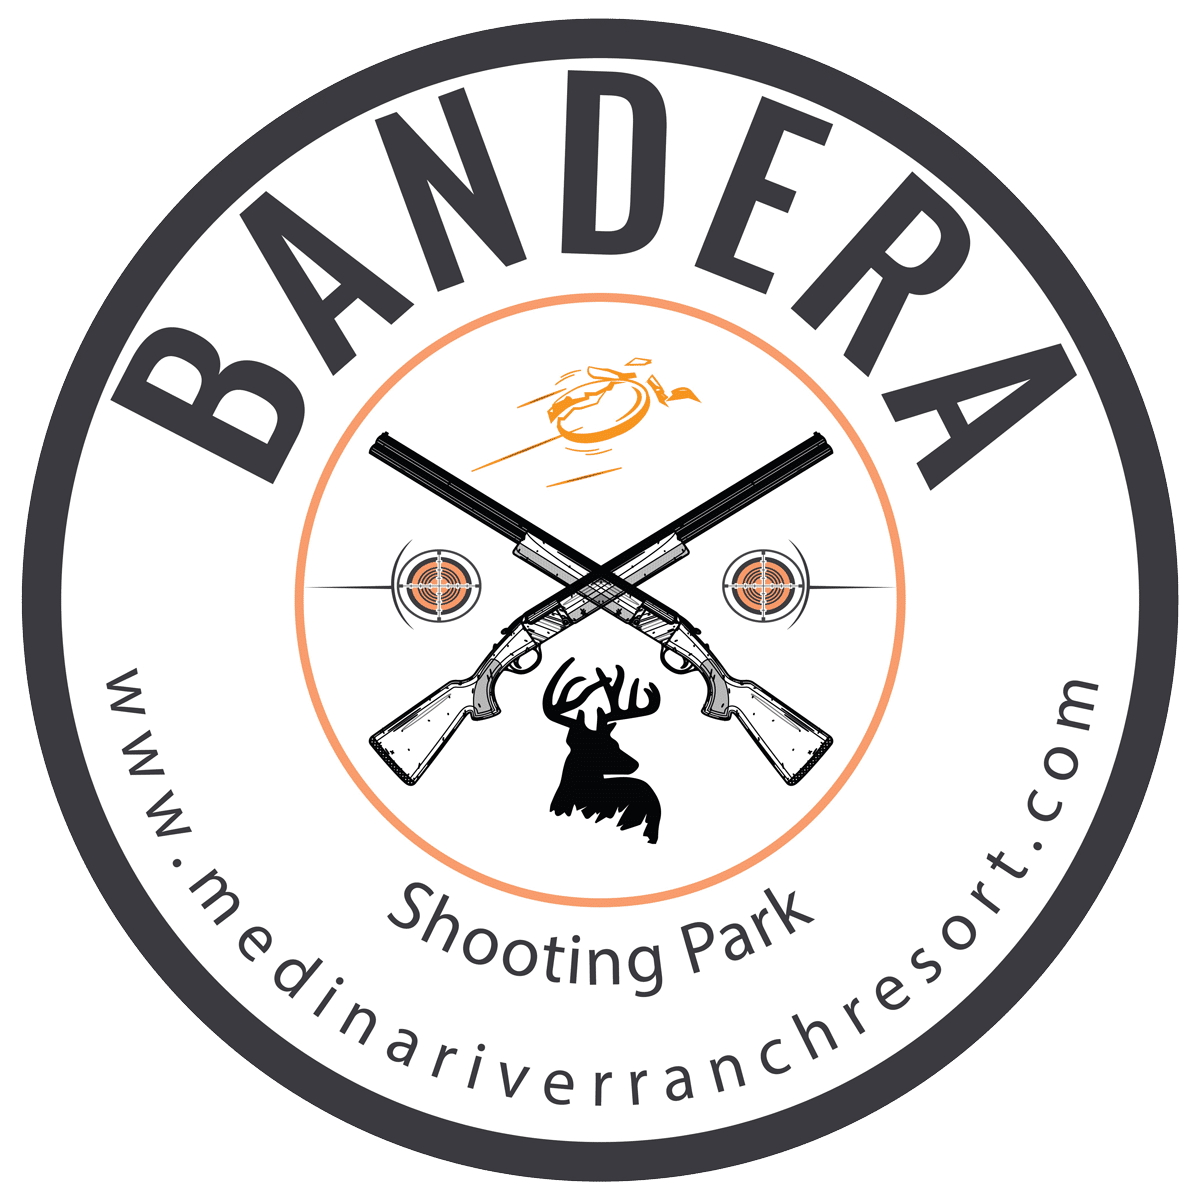 Bandera Shooting Park